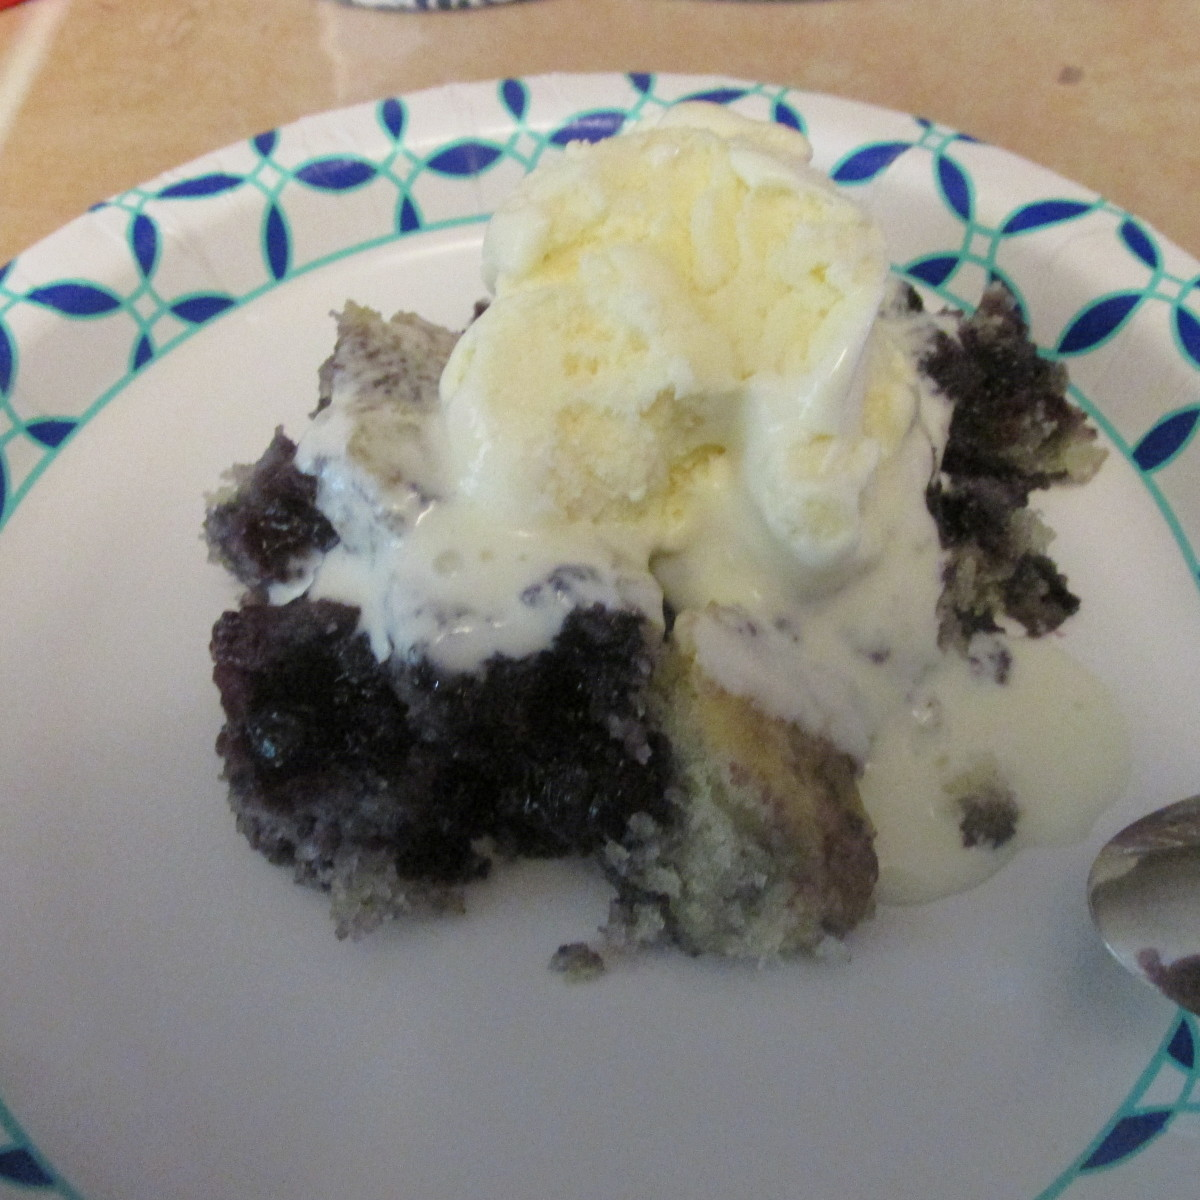 Warm blueberry cobbler topped with vanilla ice cream.